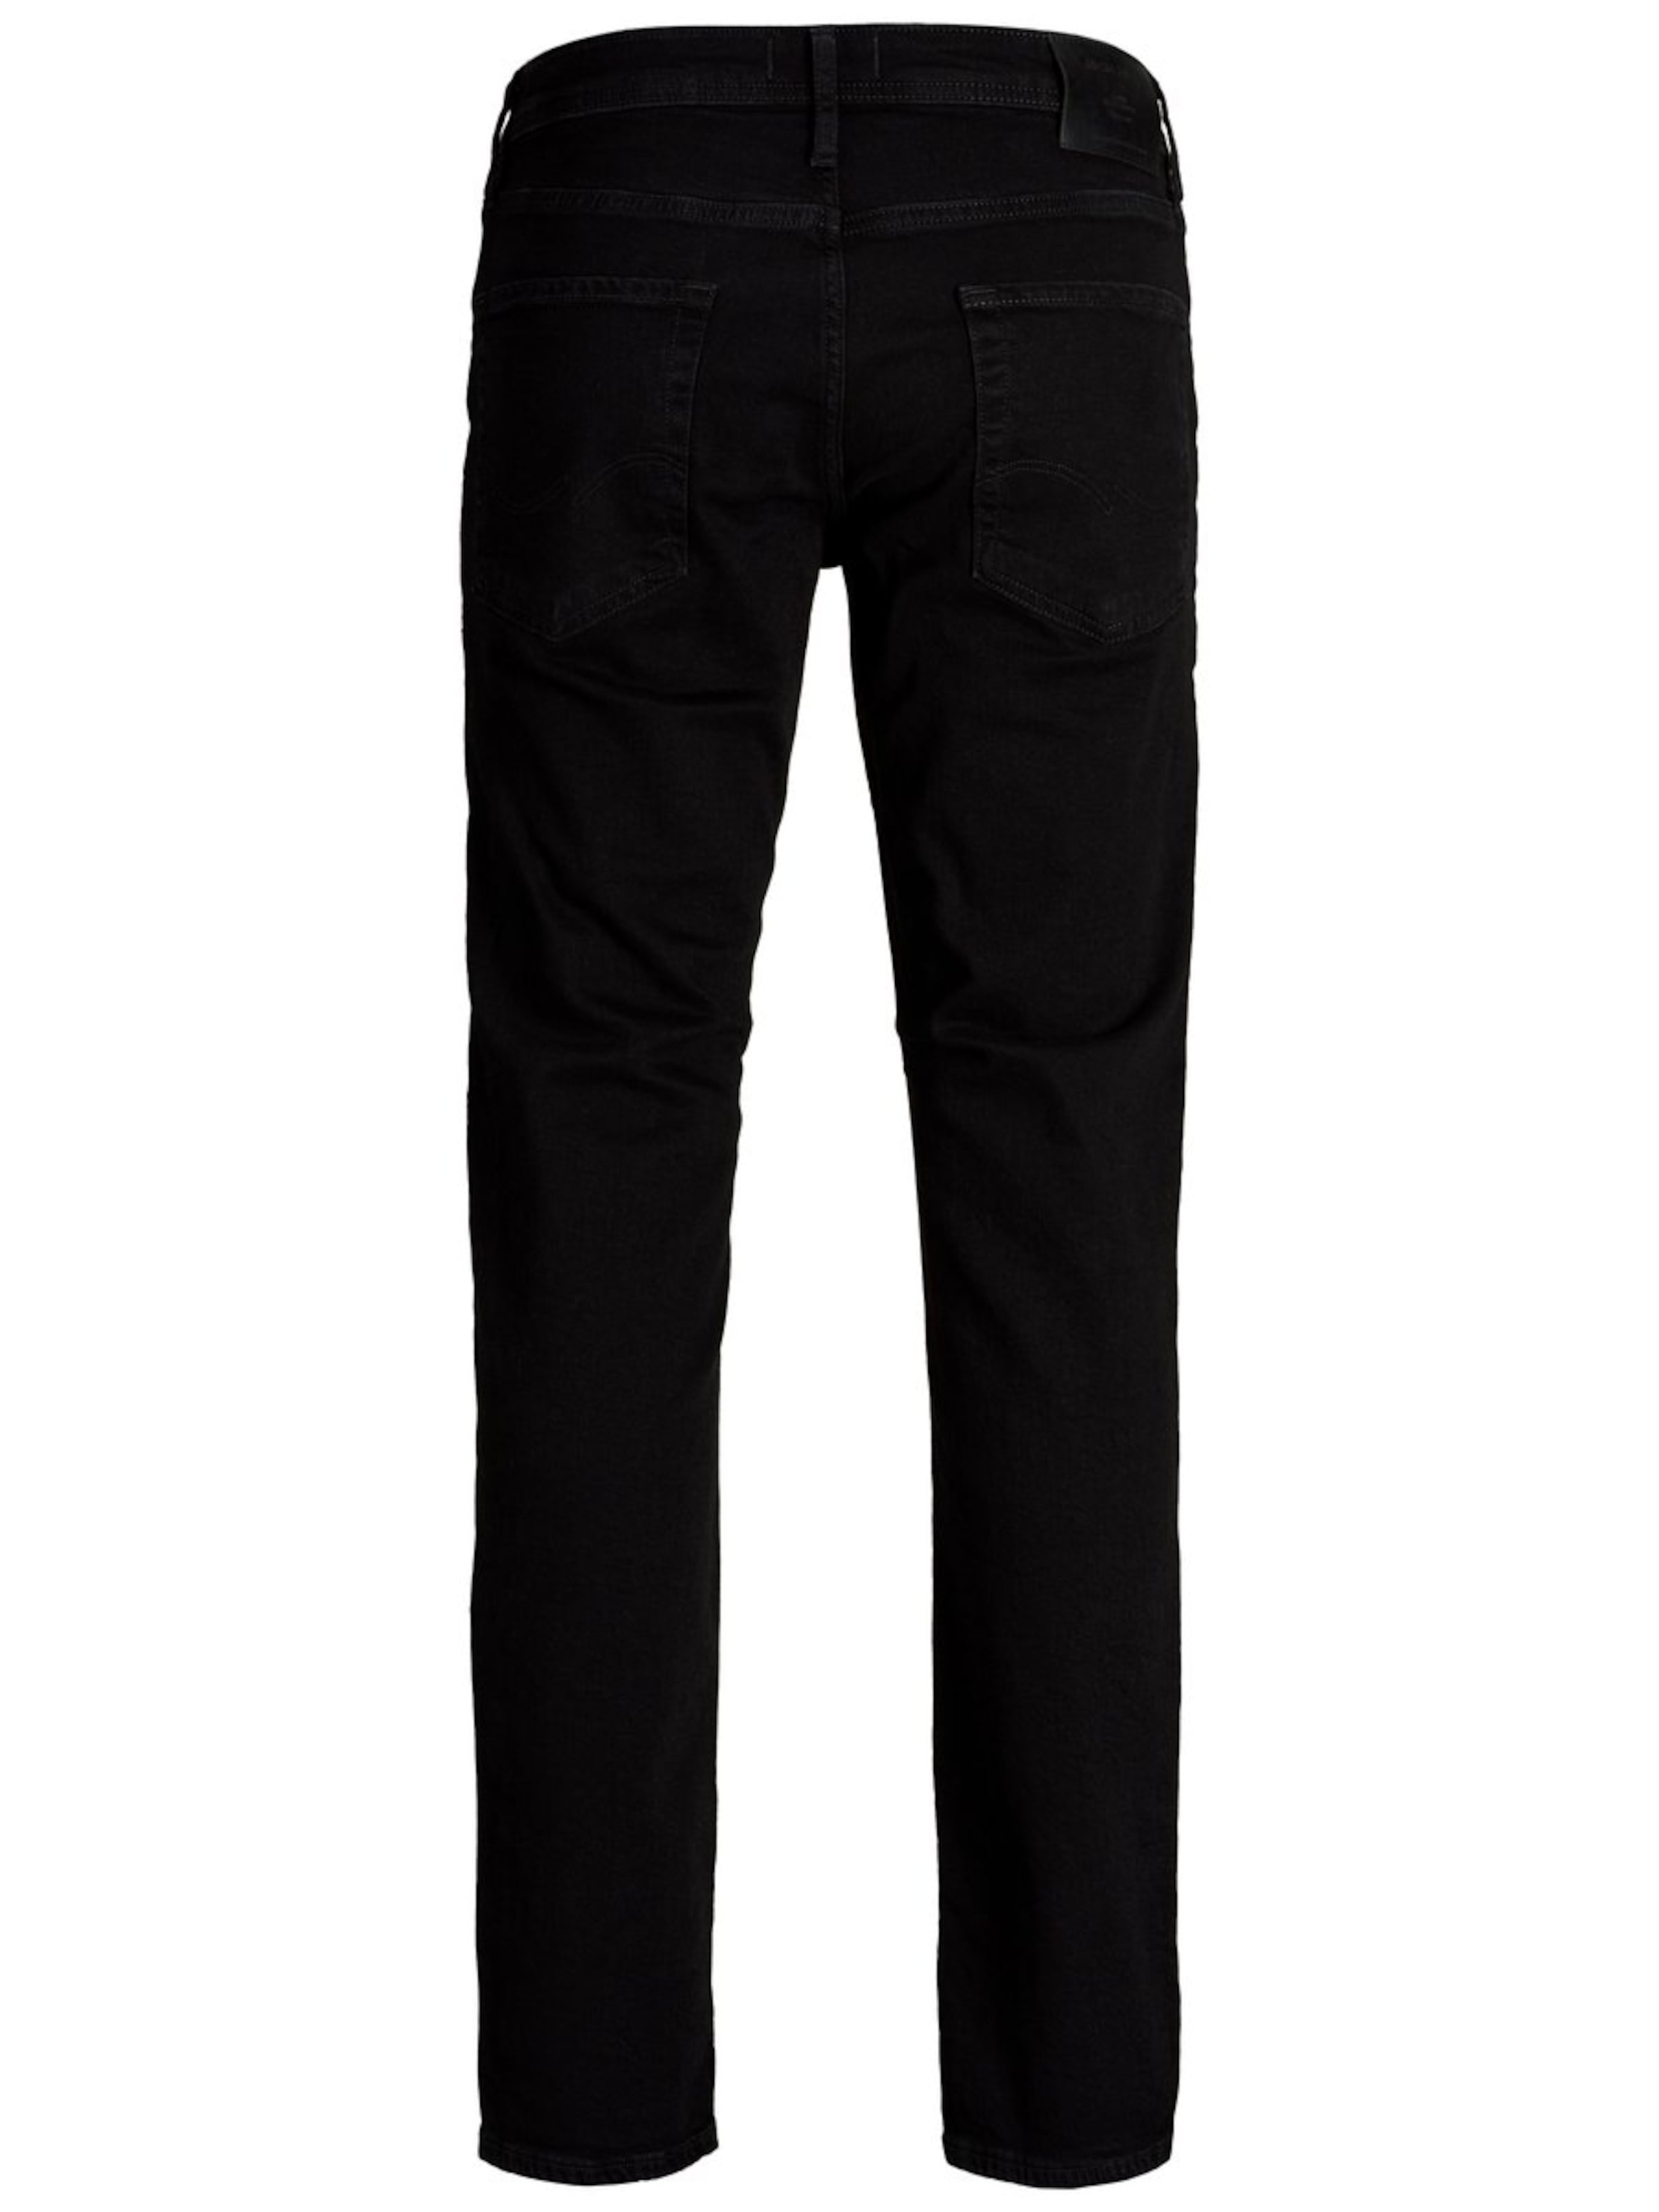 In 'clark Regular Original Fit Cj Jeans Jones 116' Schwarz Jackamp; qSVpUzM